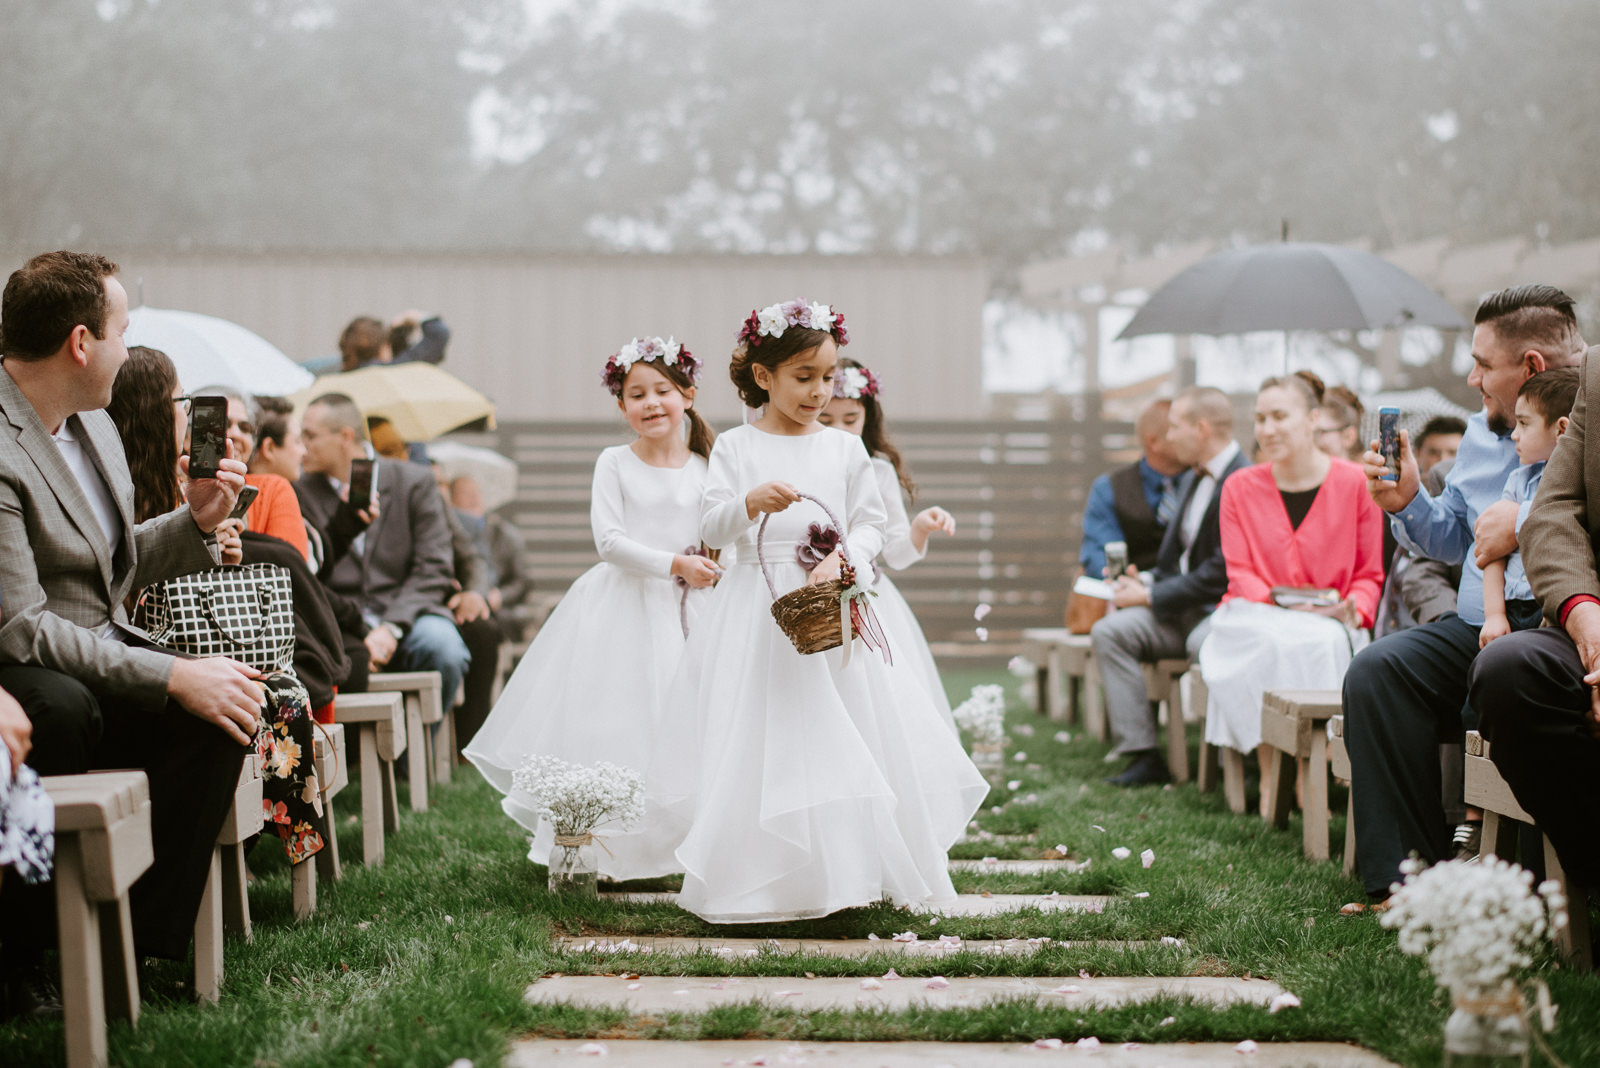 flower girls dance down the aisle before hill country wedding